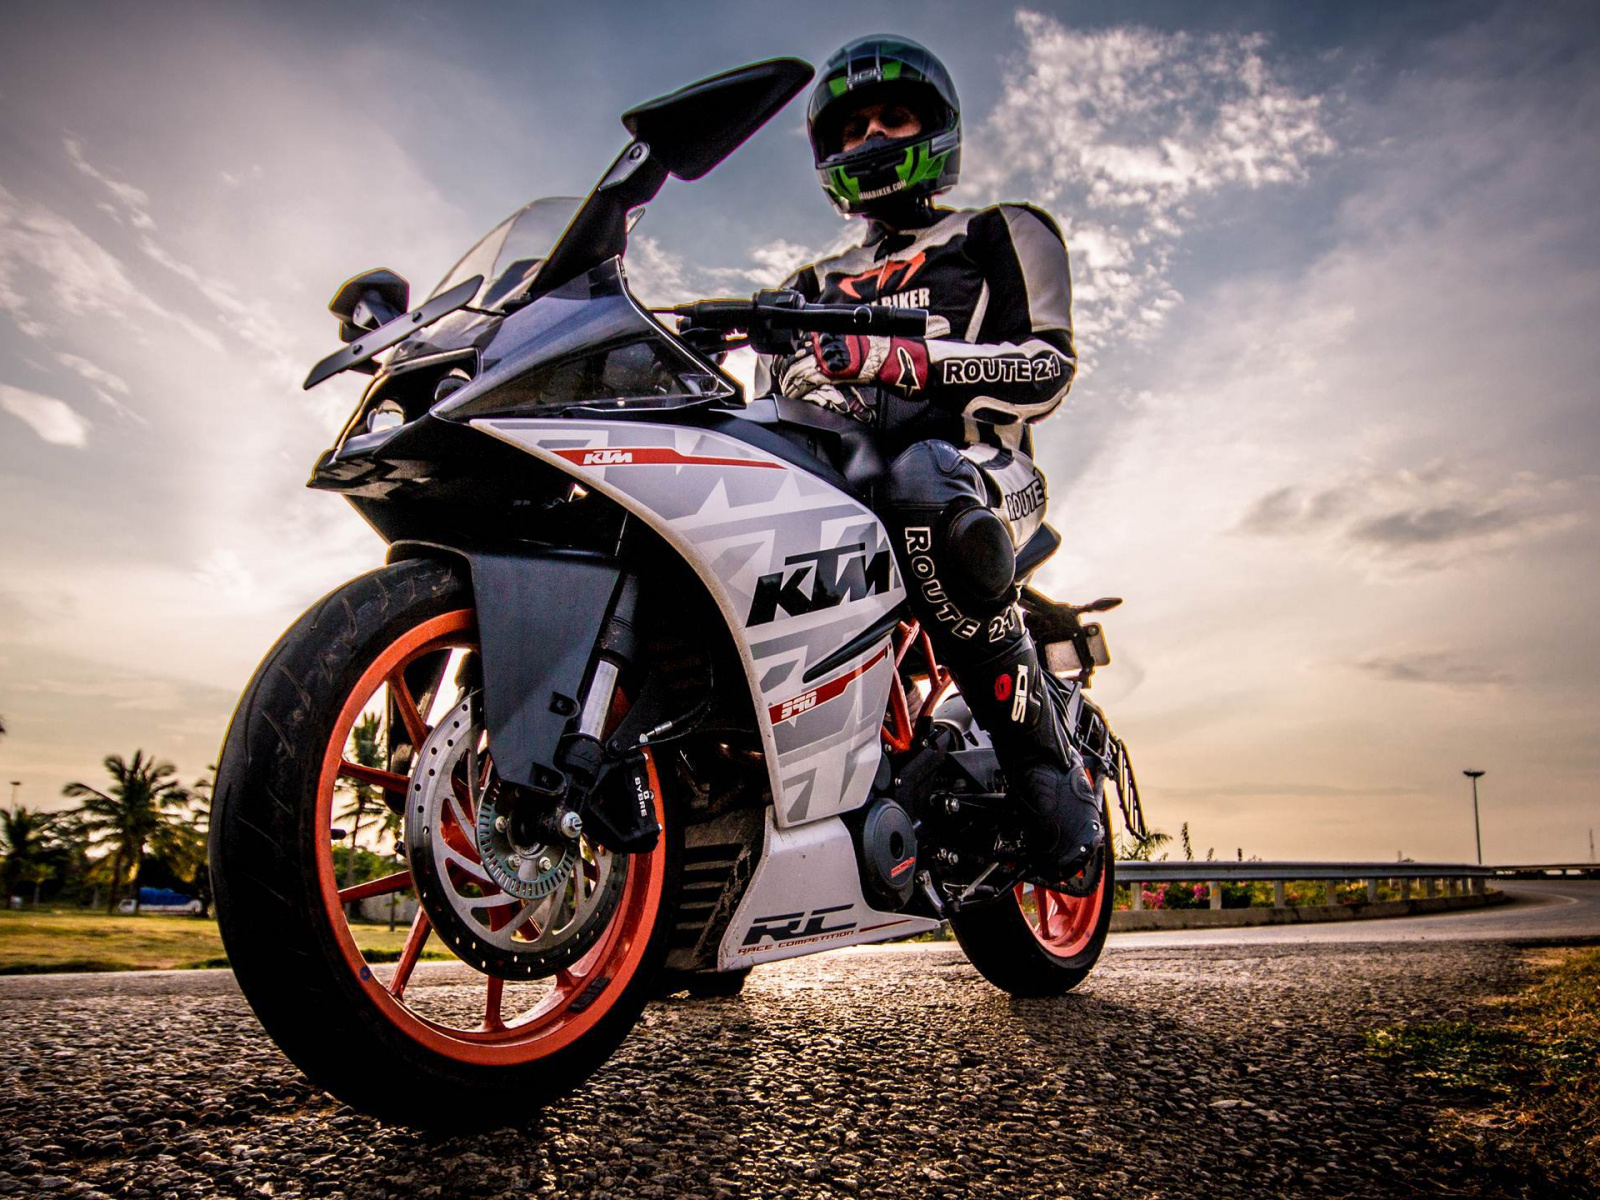 Ktm Rc 390 Wallpaper Posted By Samantha Johnson